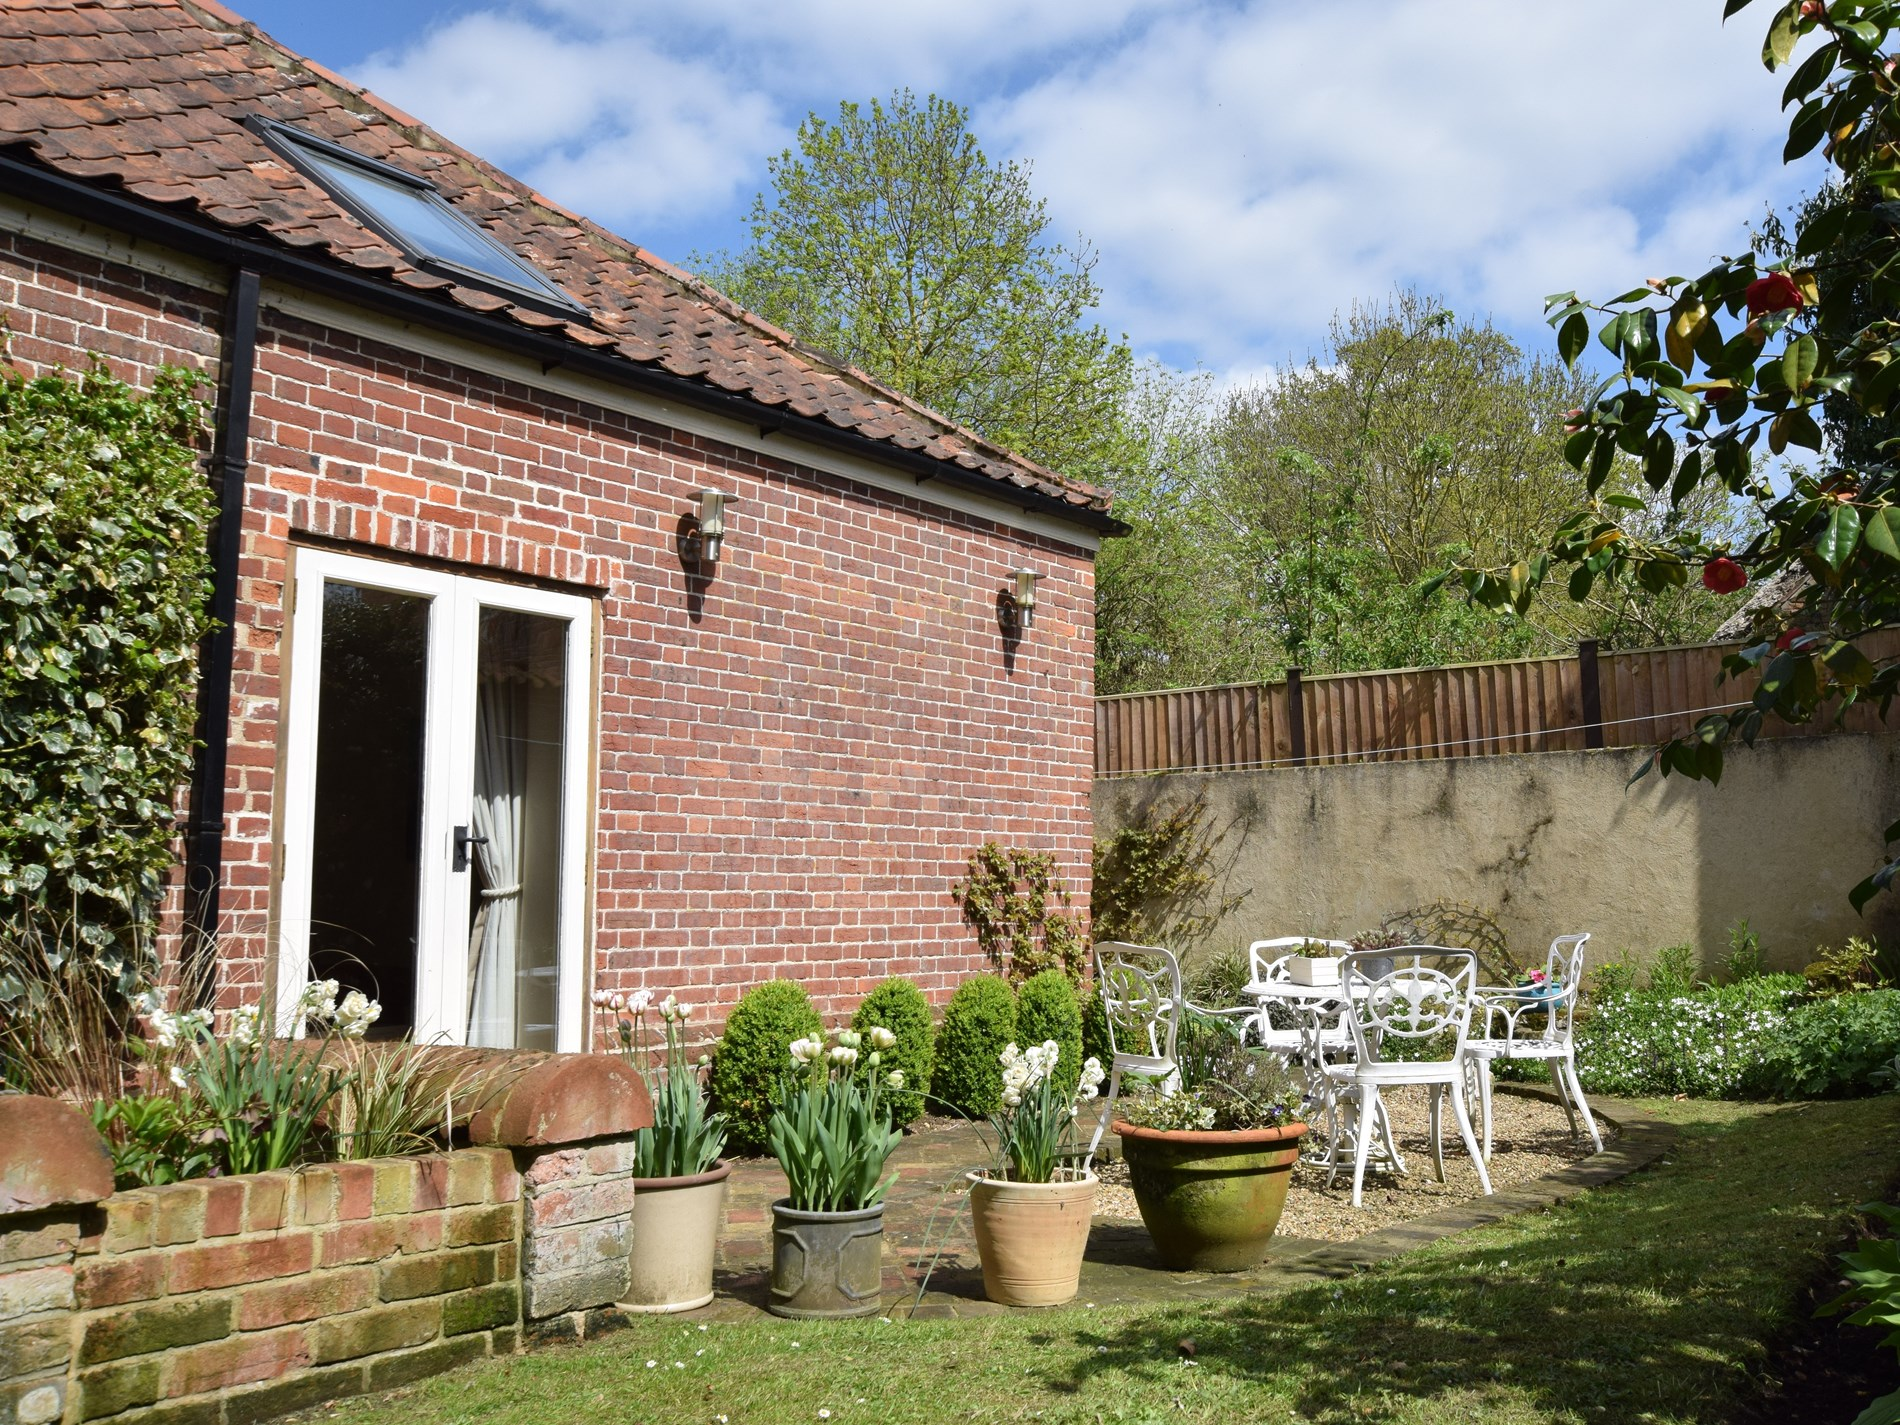 2 Bedroom Cottage in Norwich, East Anglia